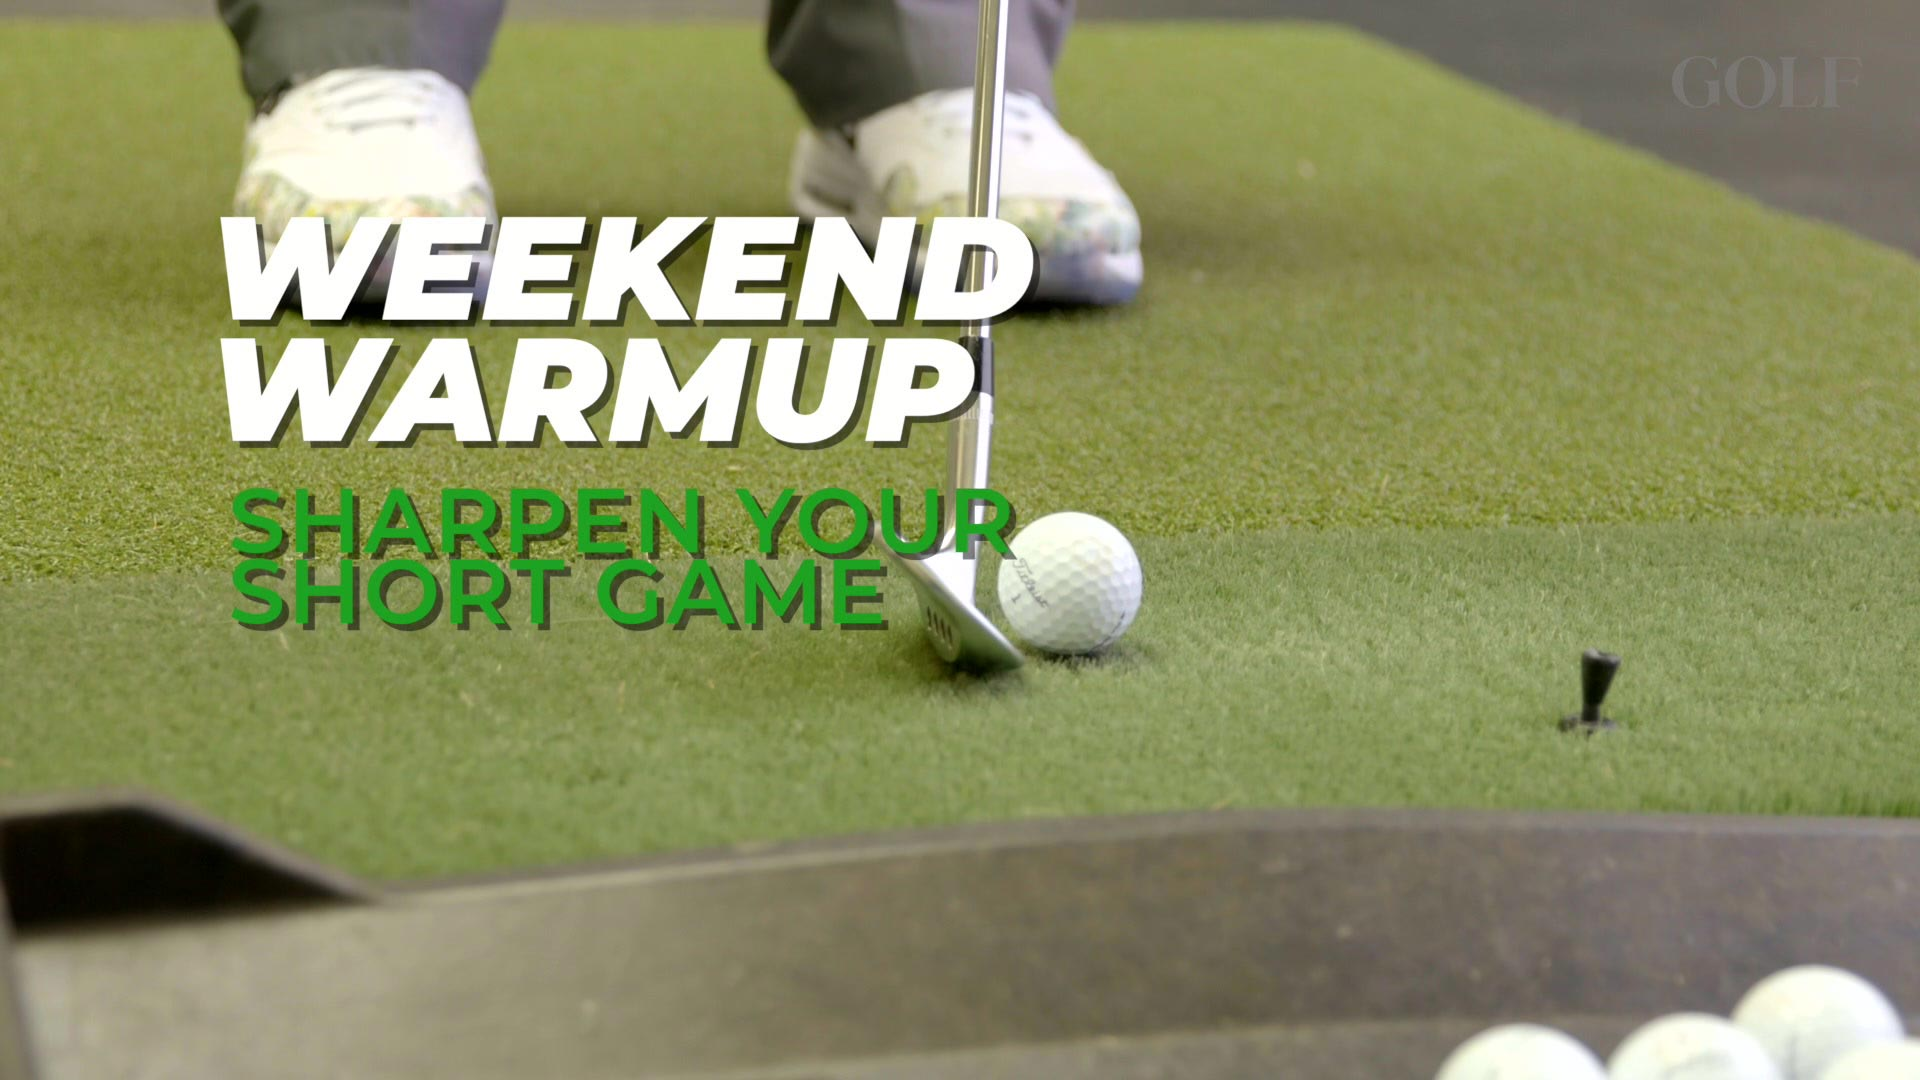 Weekend Warmup: Sharpen Your Short Game with four wedge shots